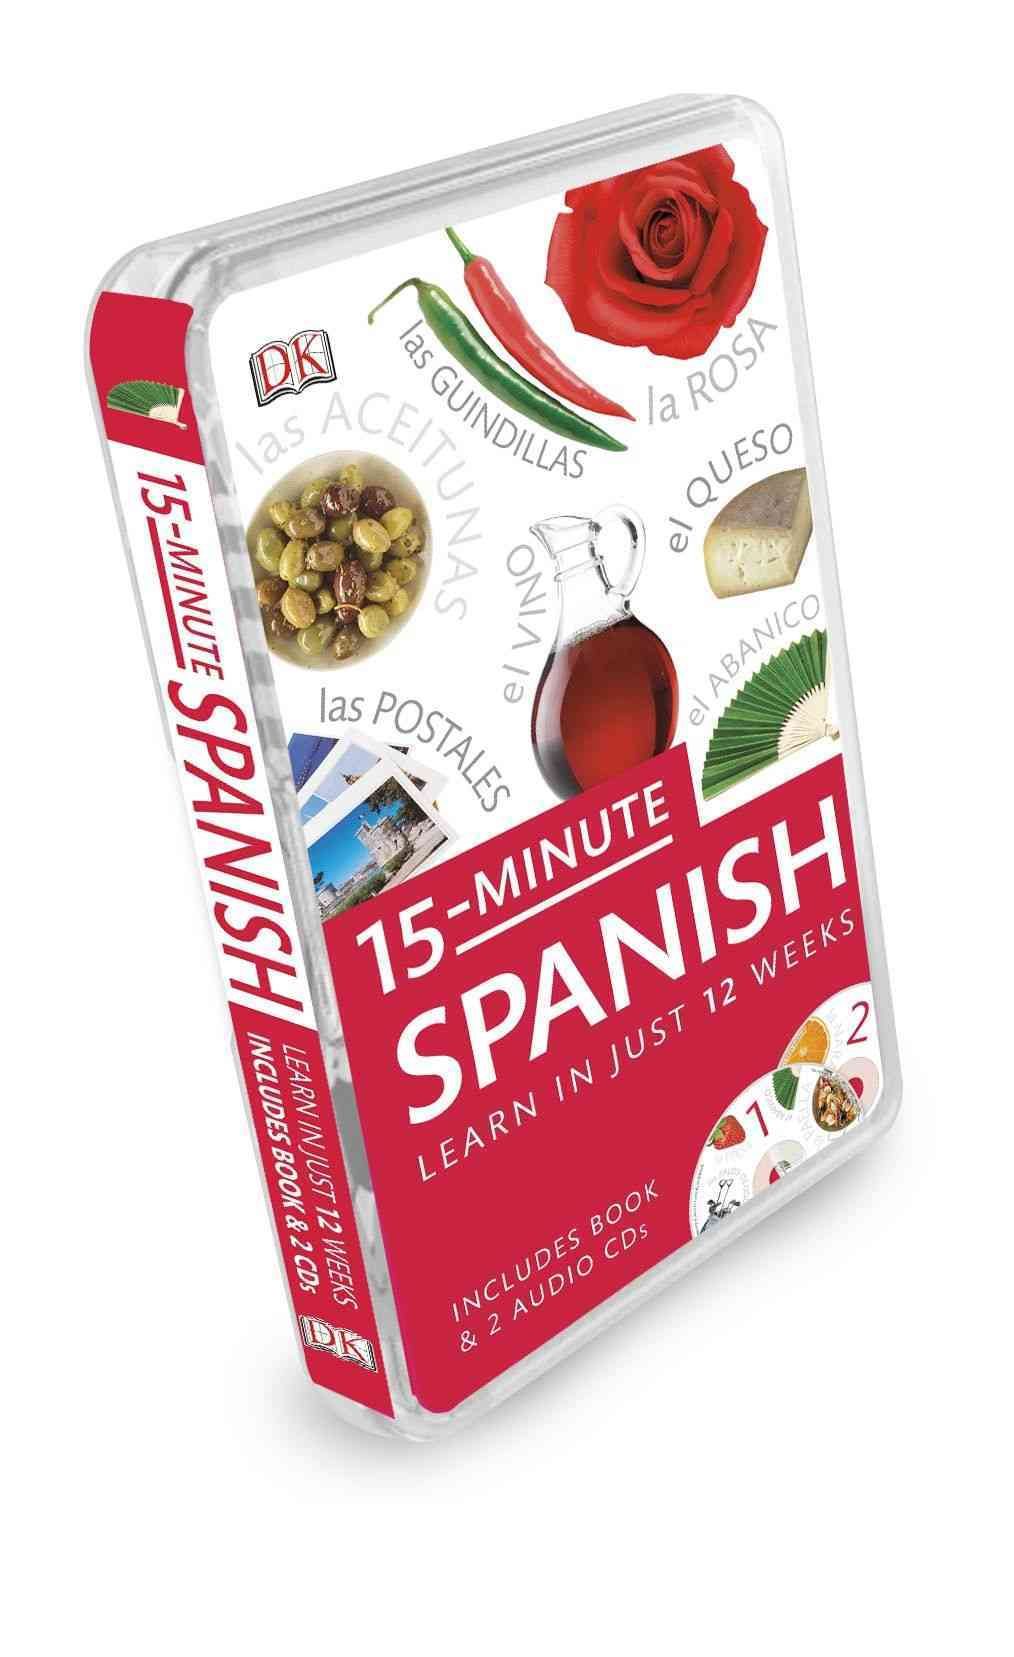 15-Minute Spanish: Learn in Just 12 Weeks